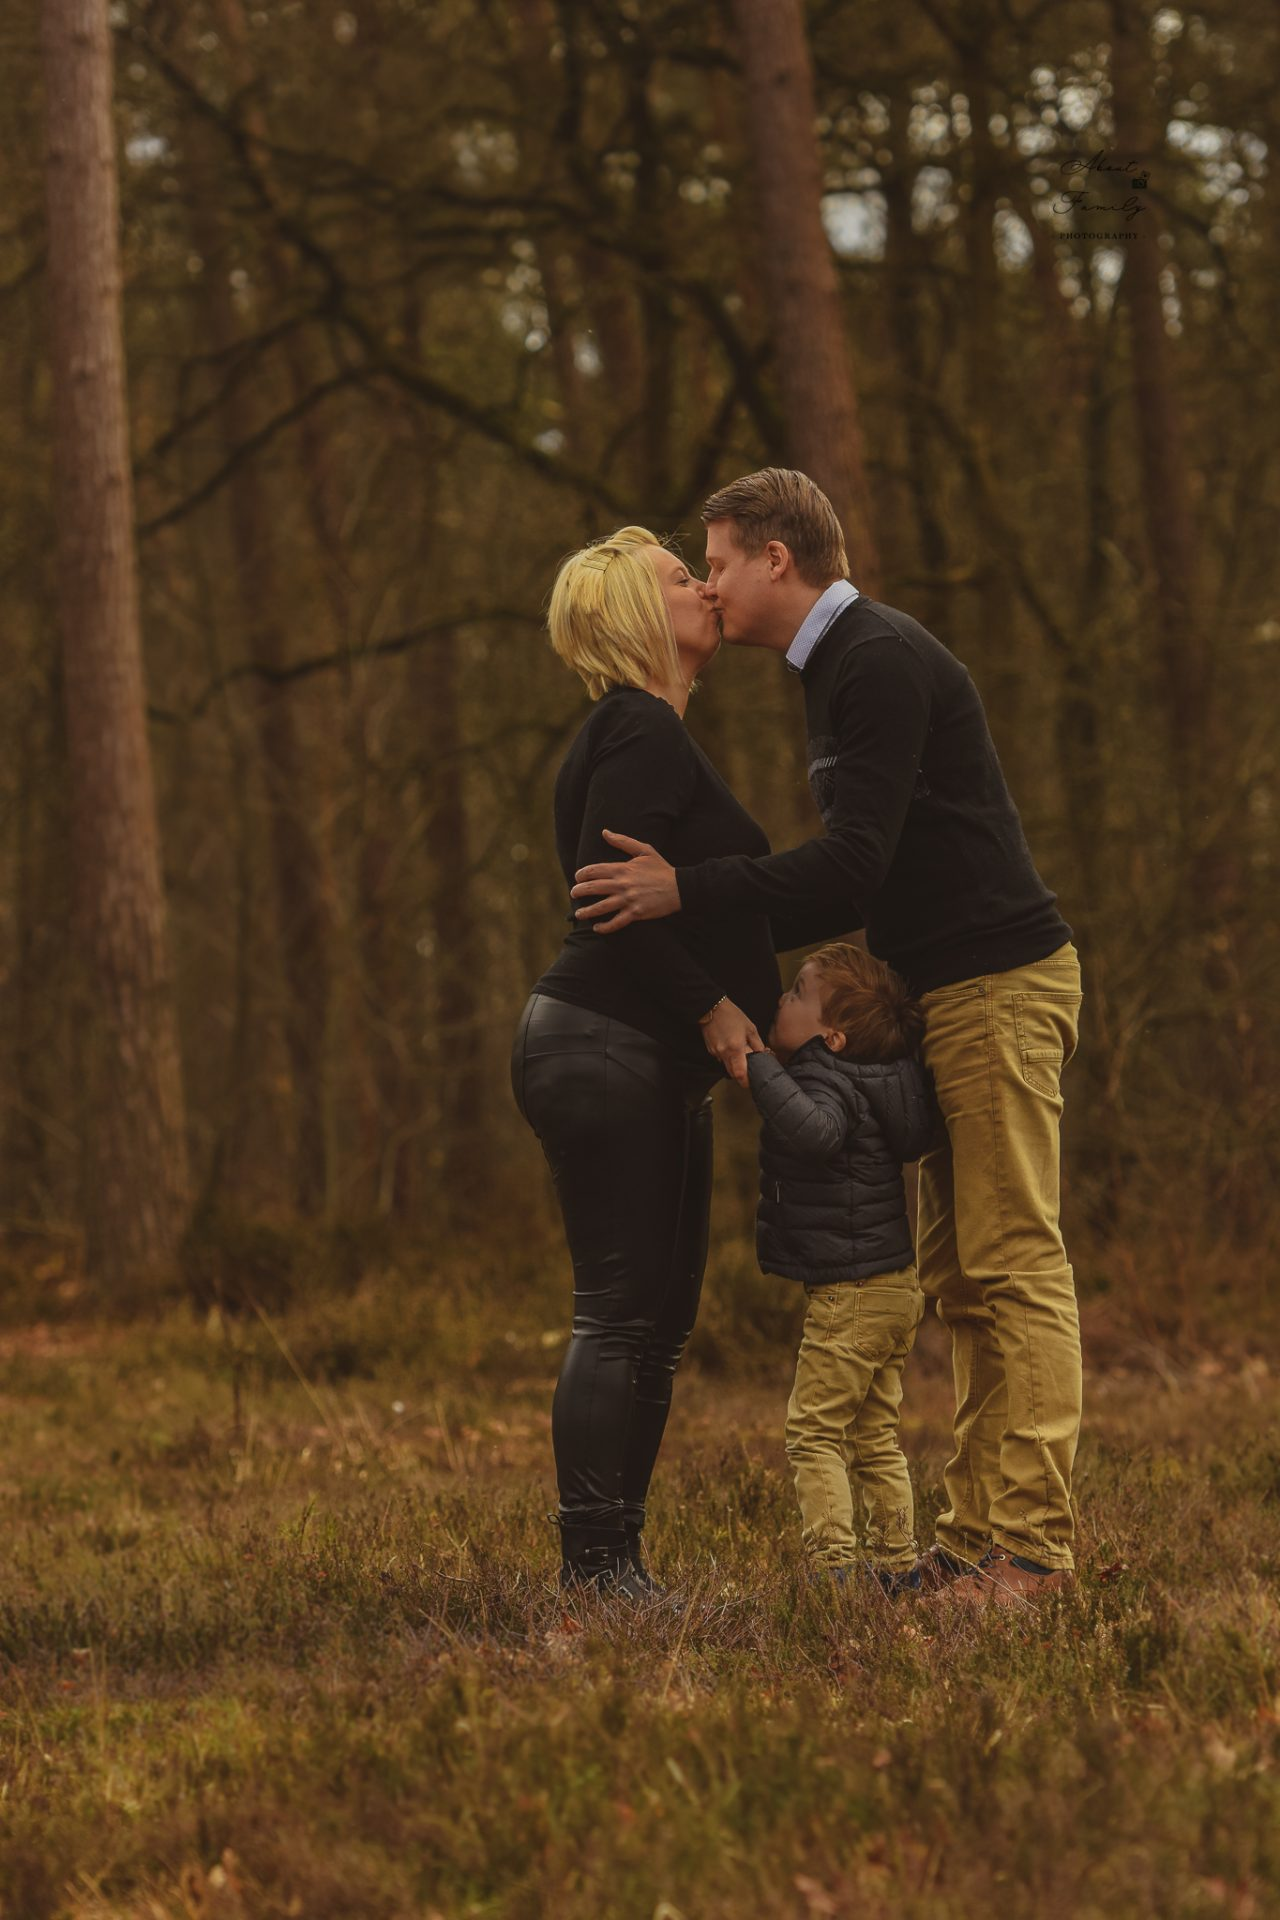 aboutfamilyphotography